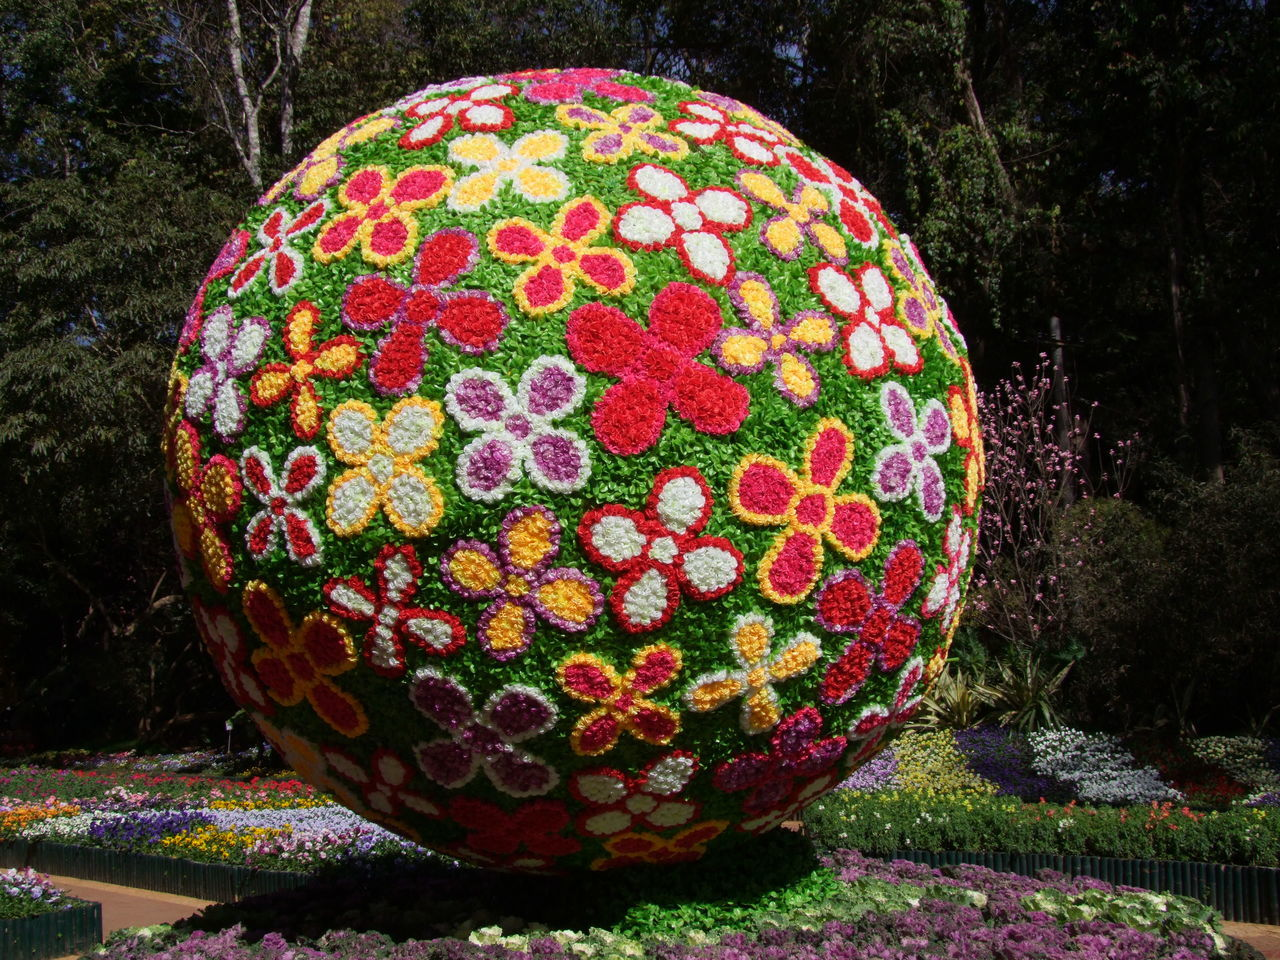 Ball of Flowers at National Kandawygi Gardens Ball Ball Of Flowers Beauty In Nature Composition Dark Background Flower Display Flower Motifs Flower Patterns Full Frame Fun Multicoloured Multicoloured Flowers Myanmar National Garden National Kandawygi Gardens No People Outdoor Photography Pyin Oo Lwin Sunlight And Shade Tourism Tourist Attraction  Tourist Destination Travel Destination Unusual